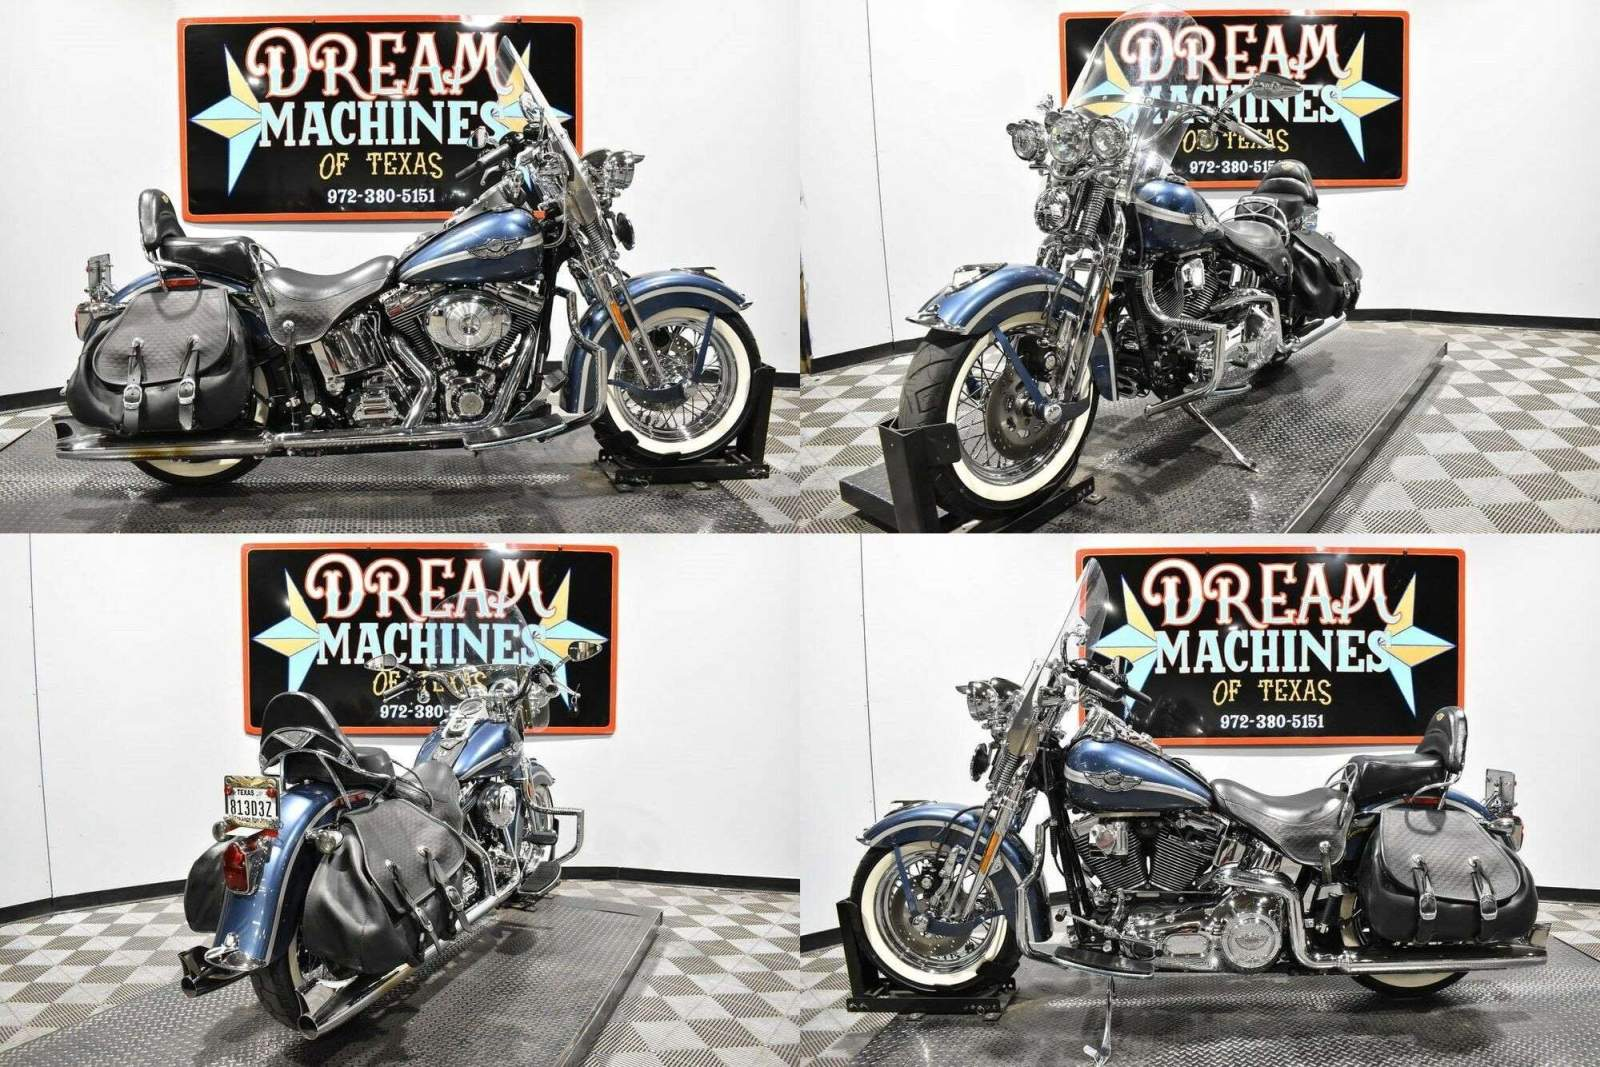 2003 Harley-Davidson FLSTS - Heritage Softail Springer 100th Anniversar Gray used for sale near me